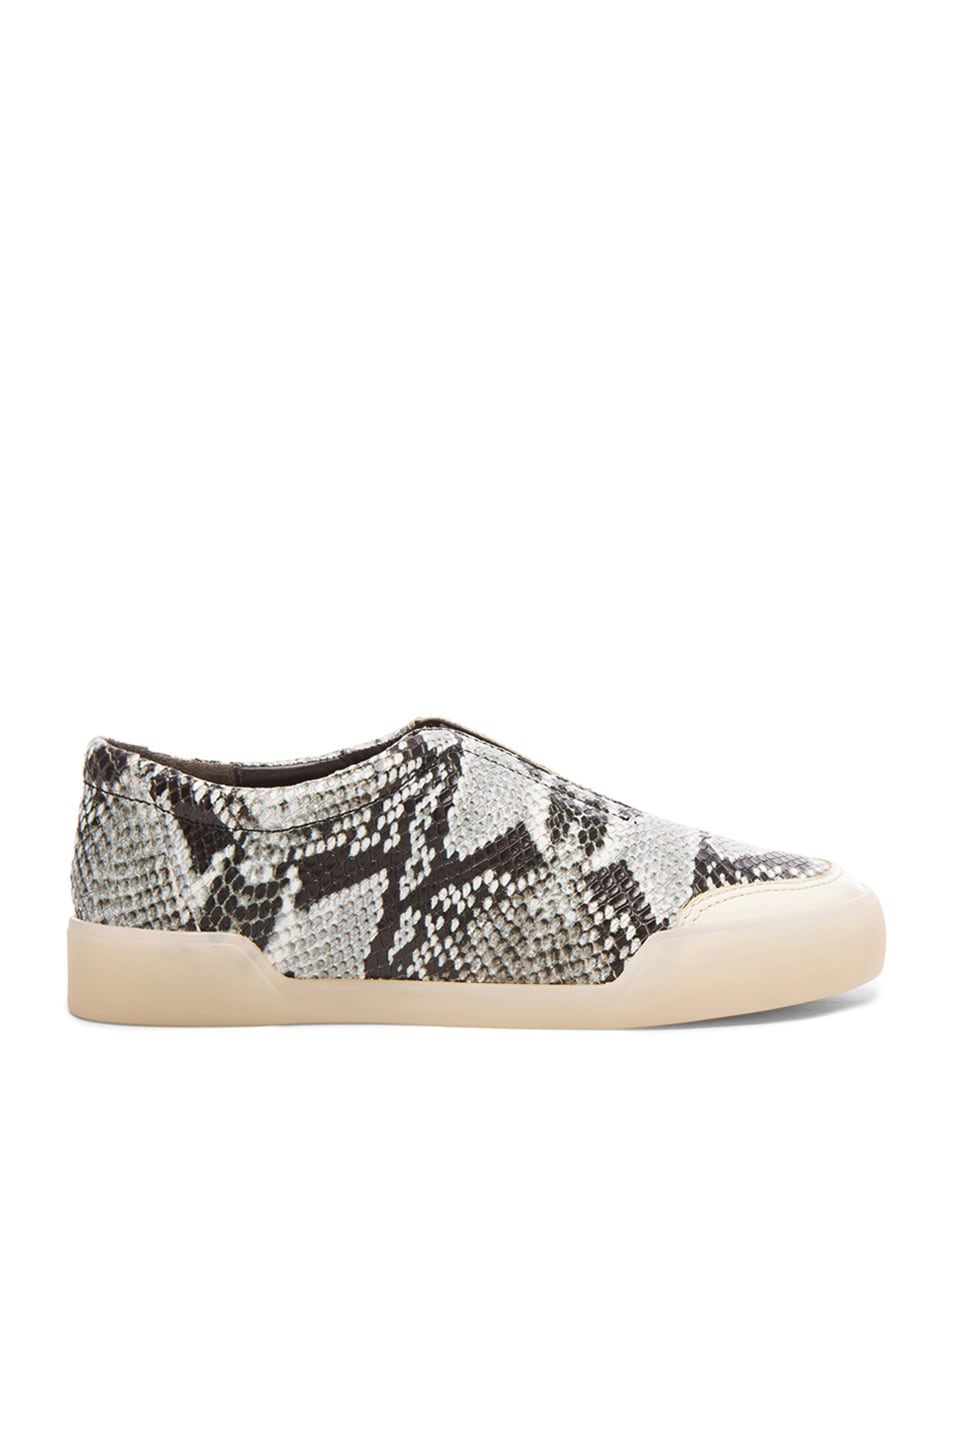 Image 1 of 3.1 phillip lim Morgan Python Print Low Top Leather Sneakers in Off White